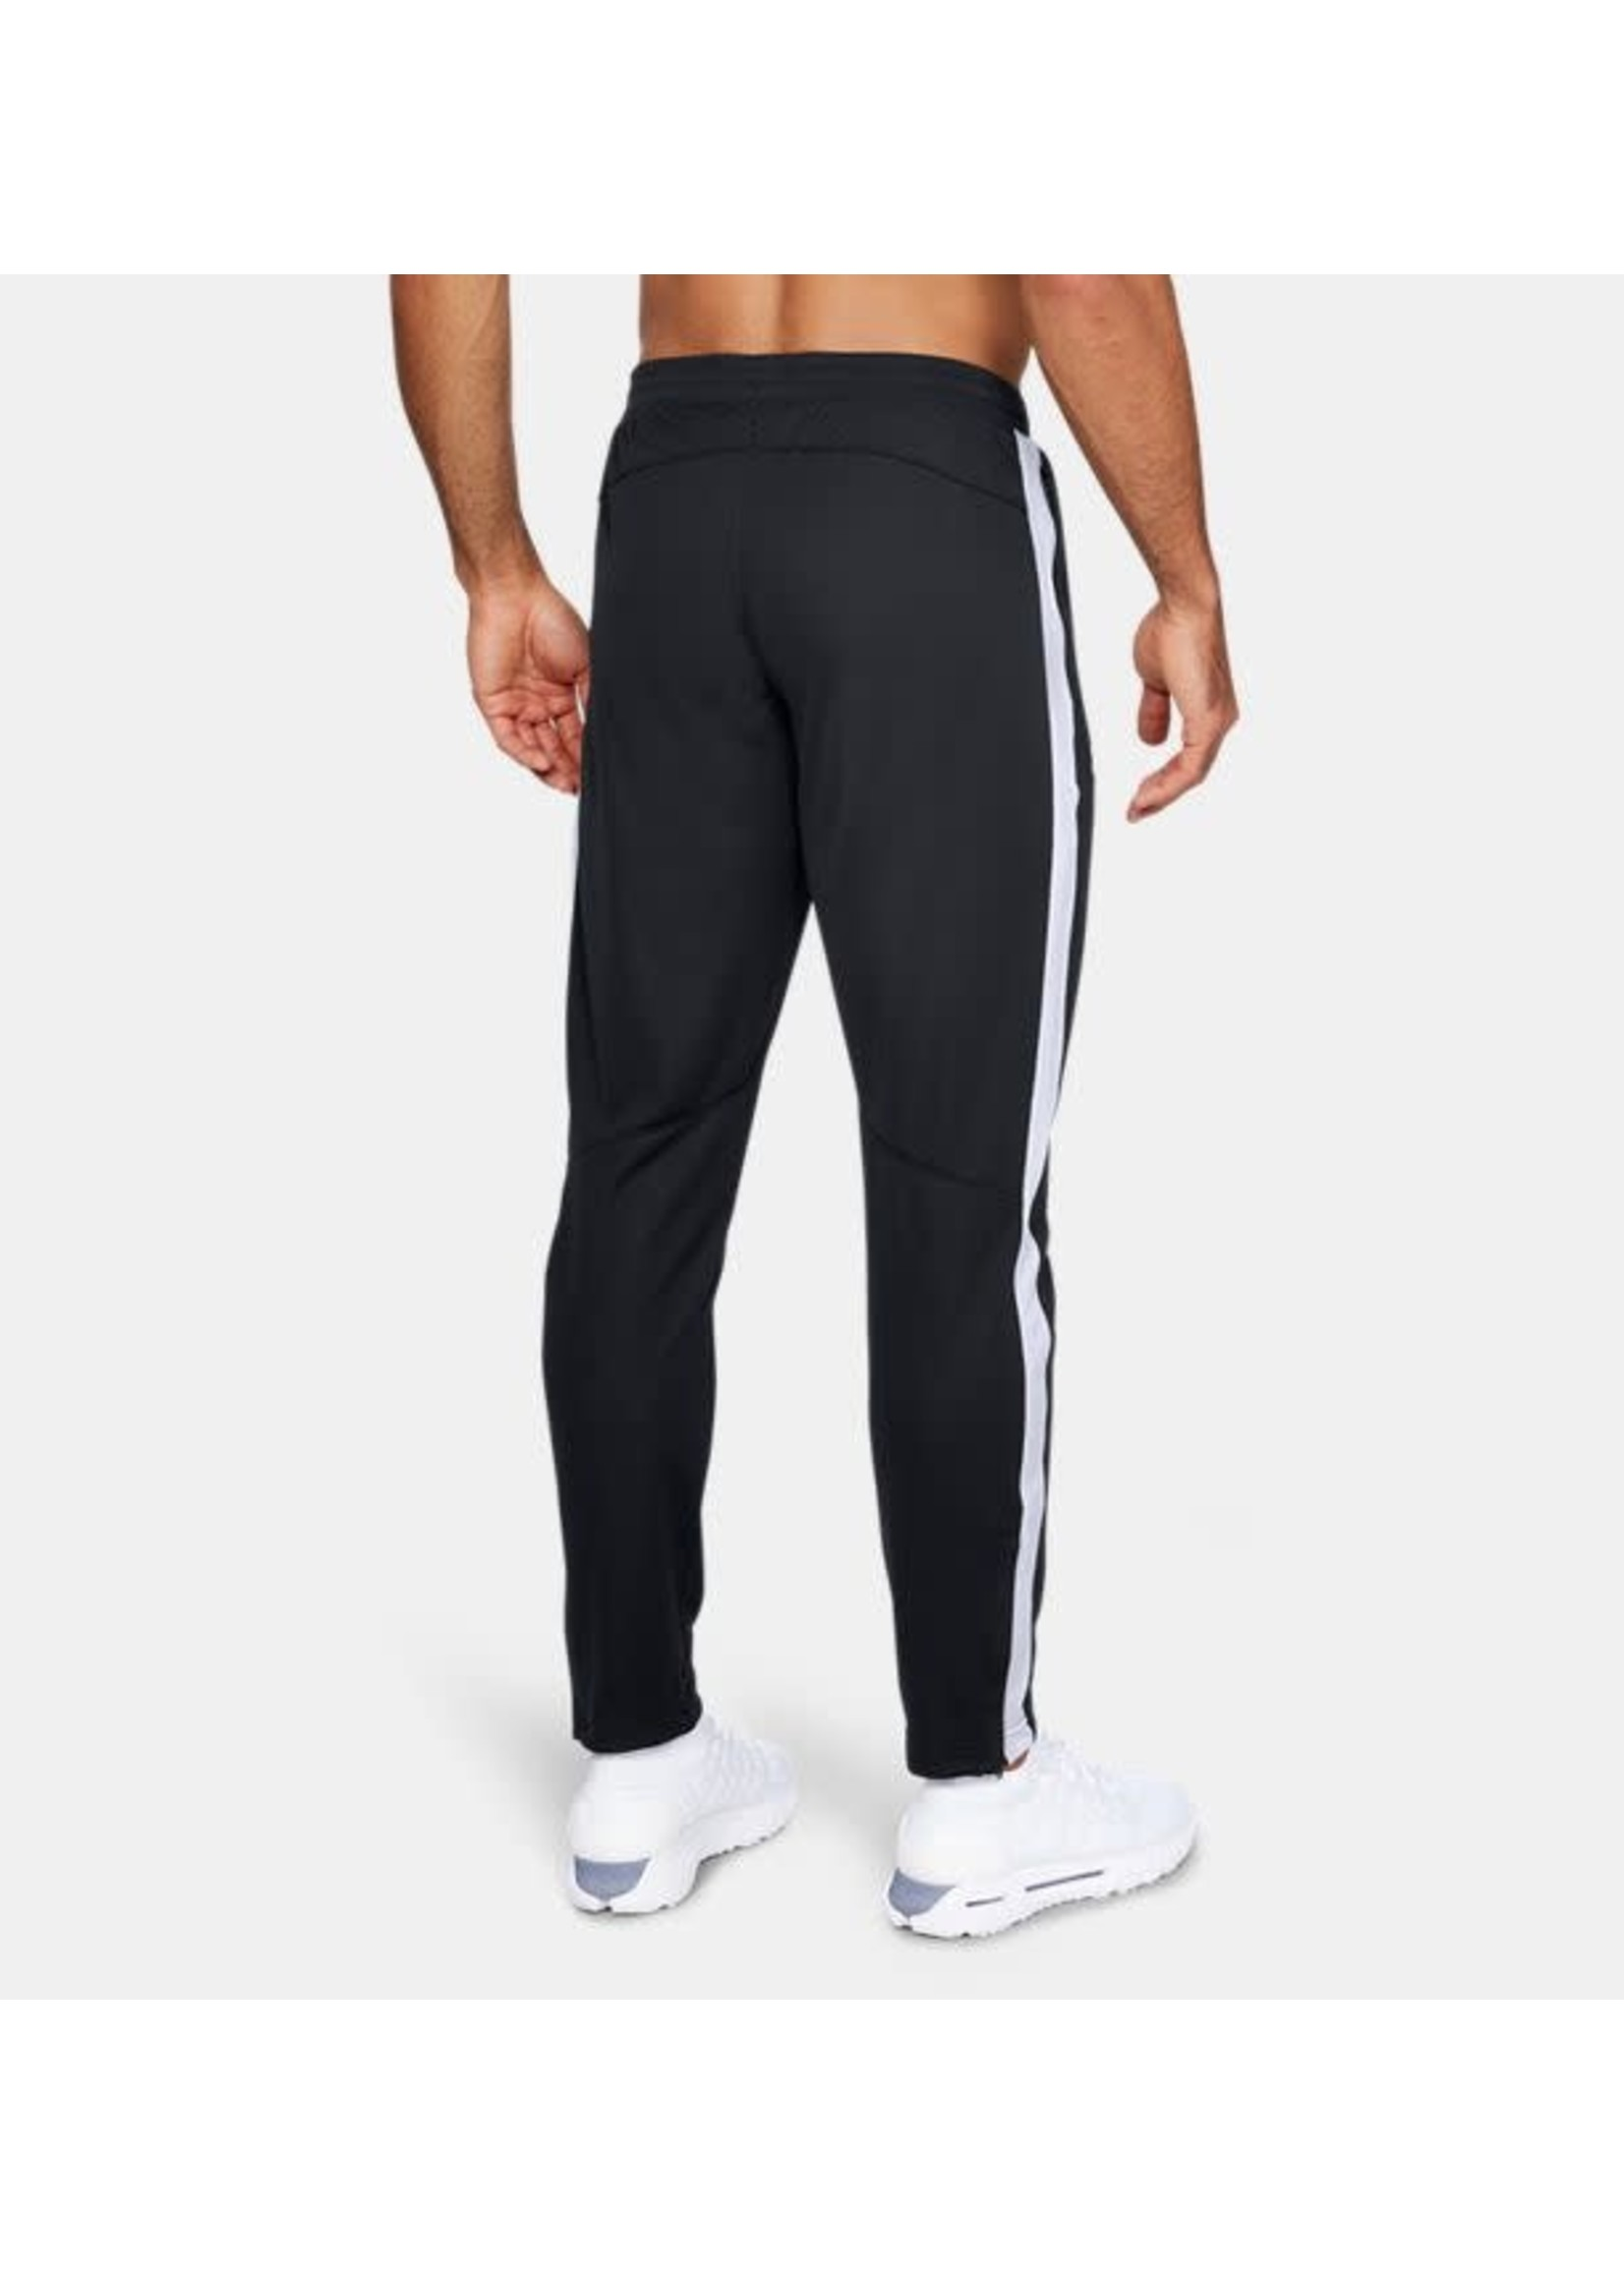 Under Armour SPORTSTYLE PIQUE TRACK PANT 1313201